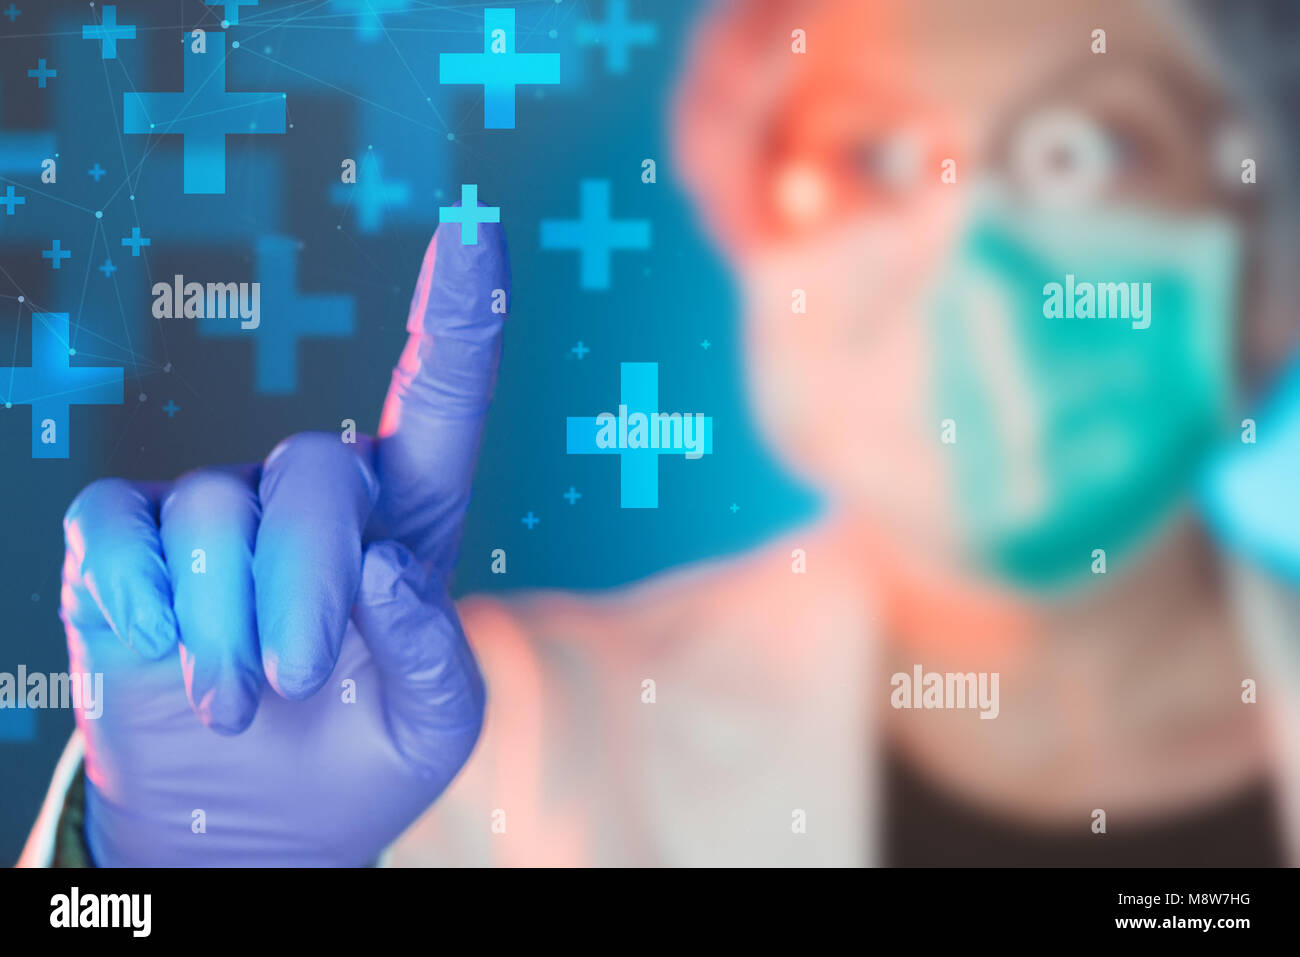 Emergency medicine specialist working in medical clinic hospital, portrait of female healthcare professional - Stock Image